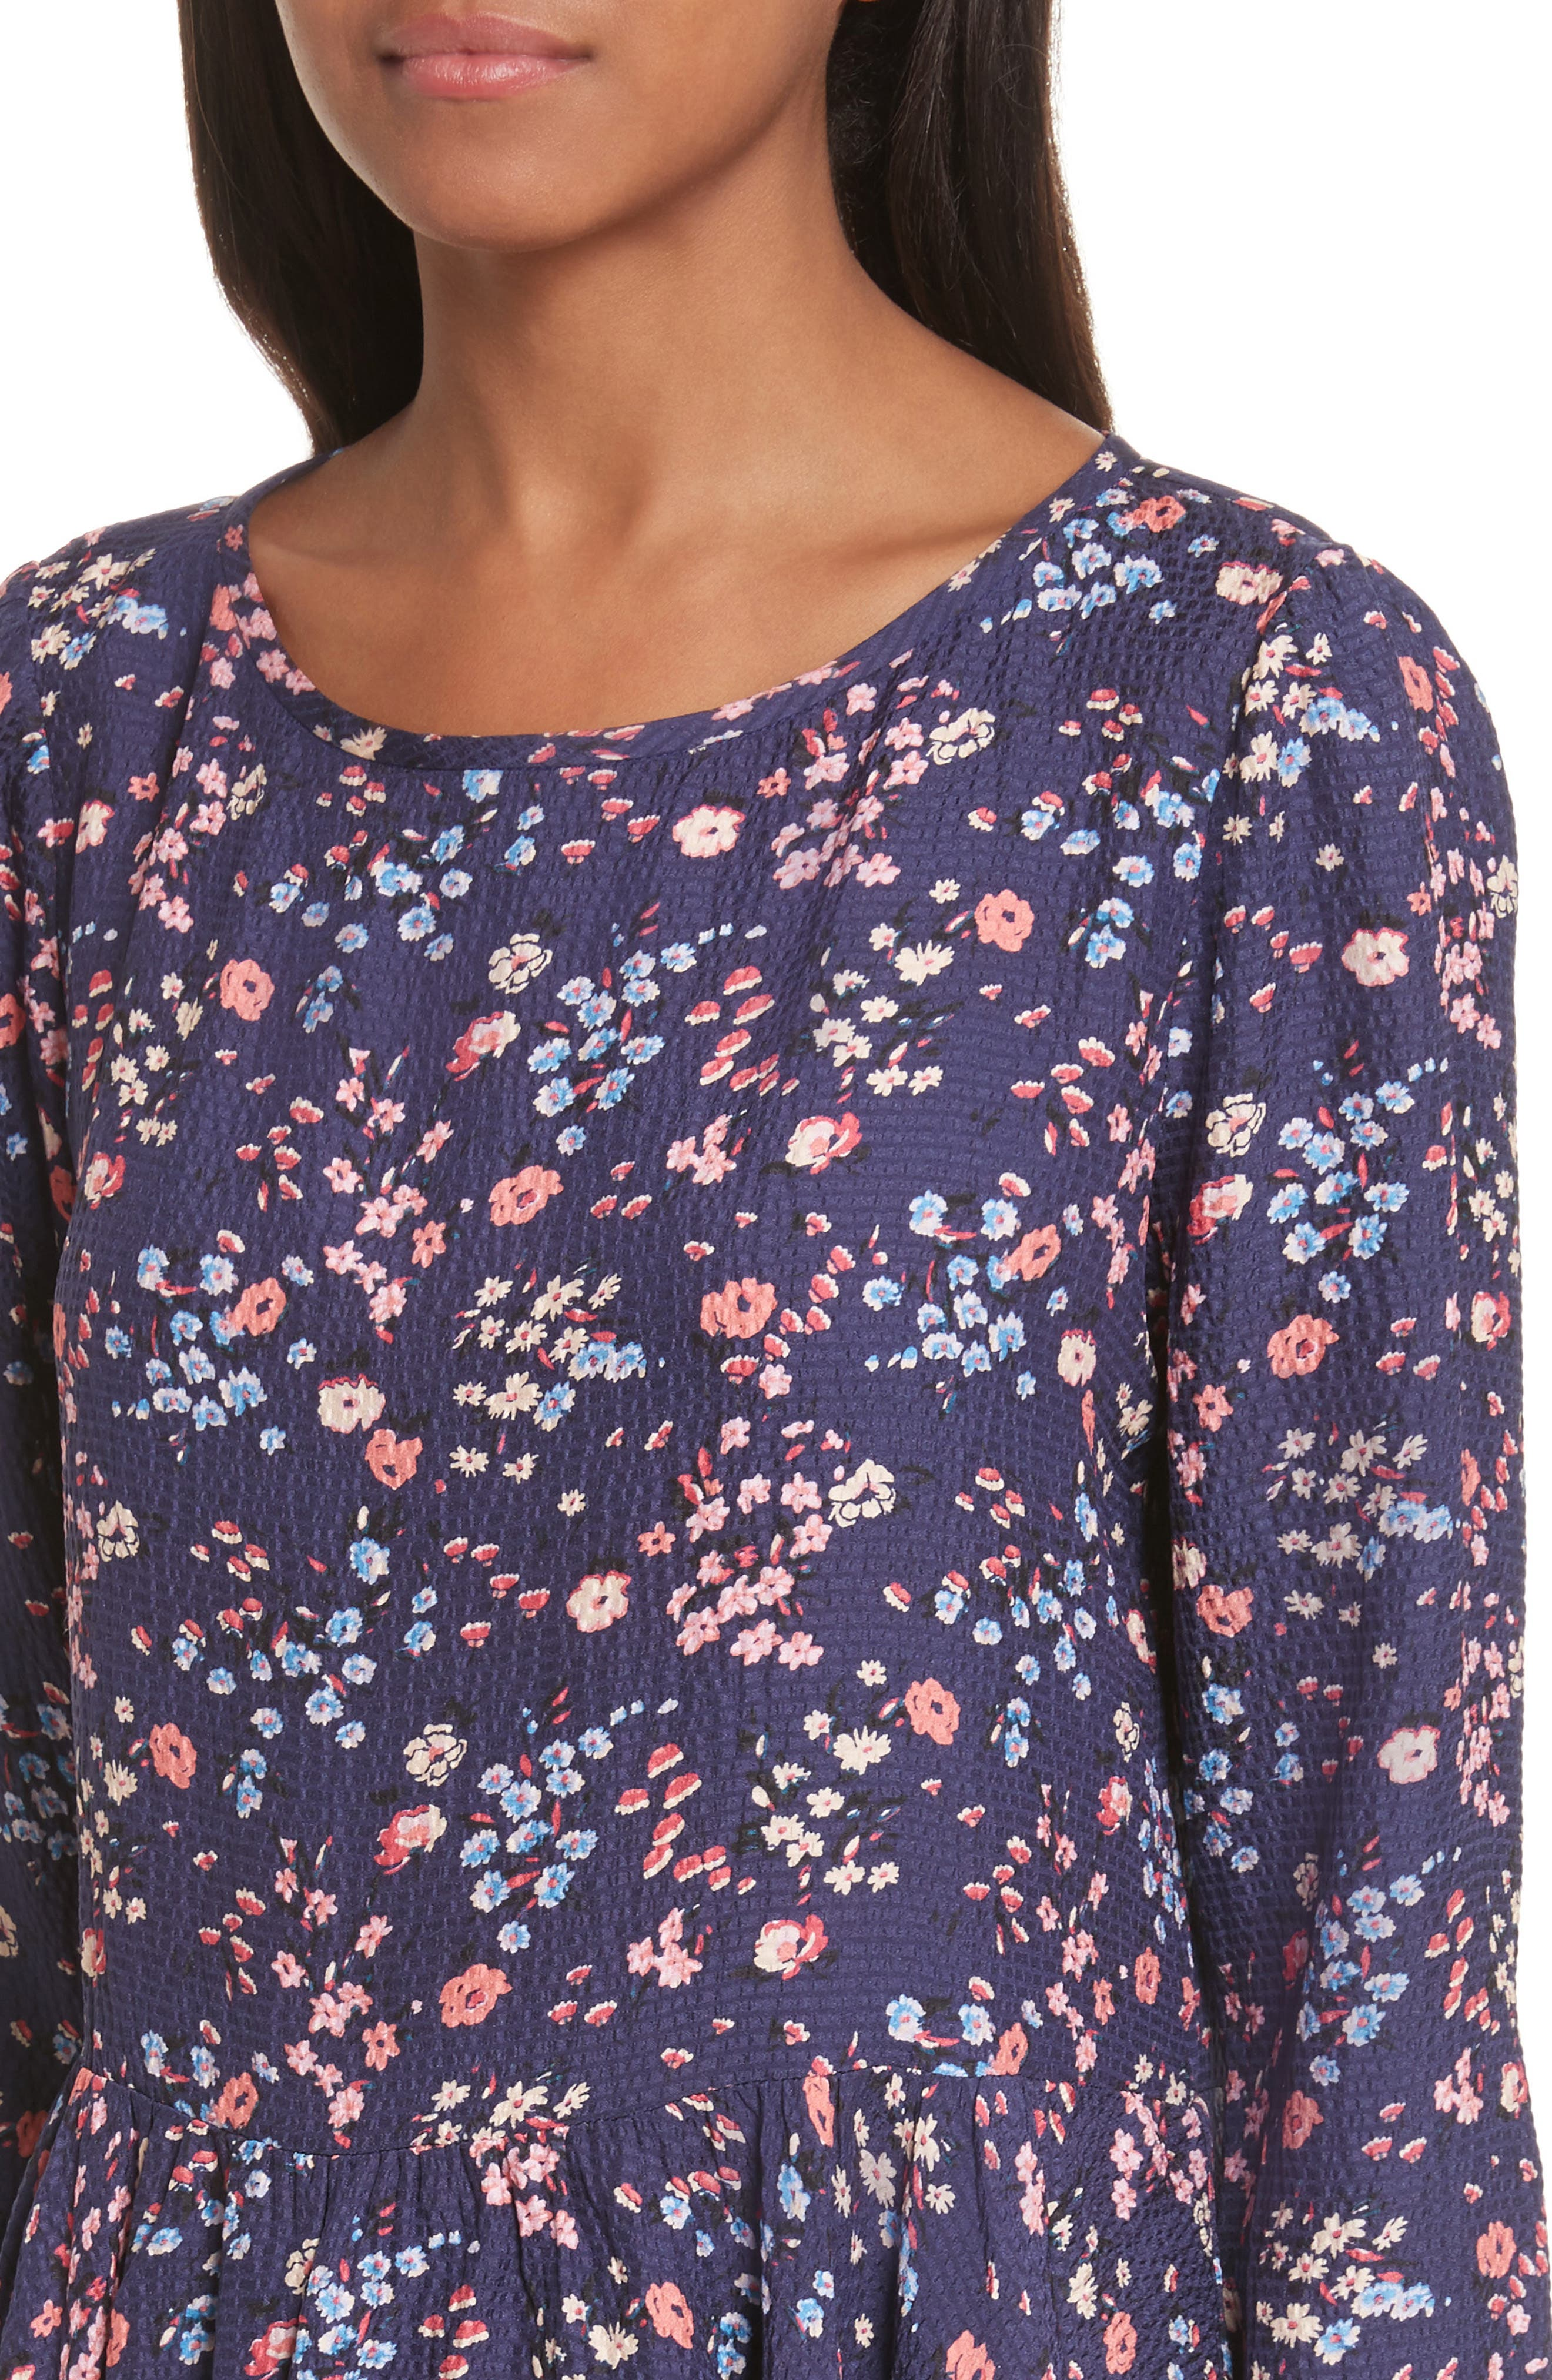 Woodland Floral Print Silk Top,                             Alternate thumbnail 4, color,                             565